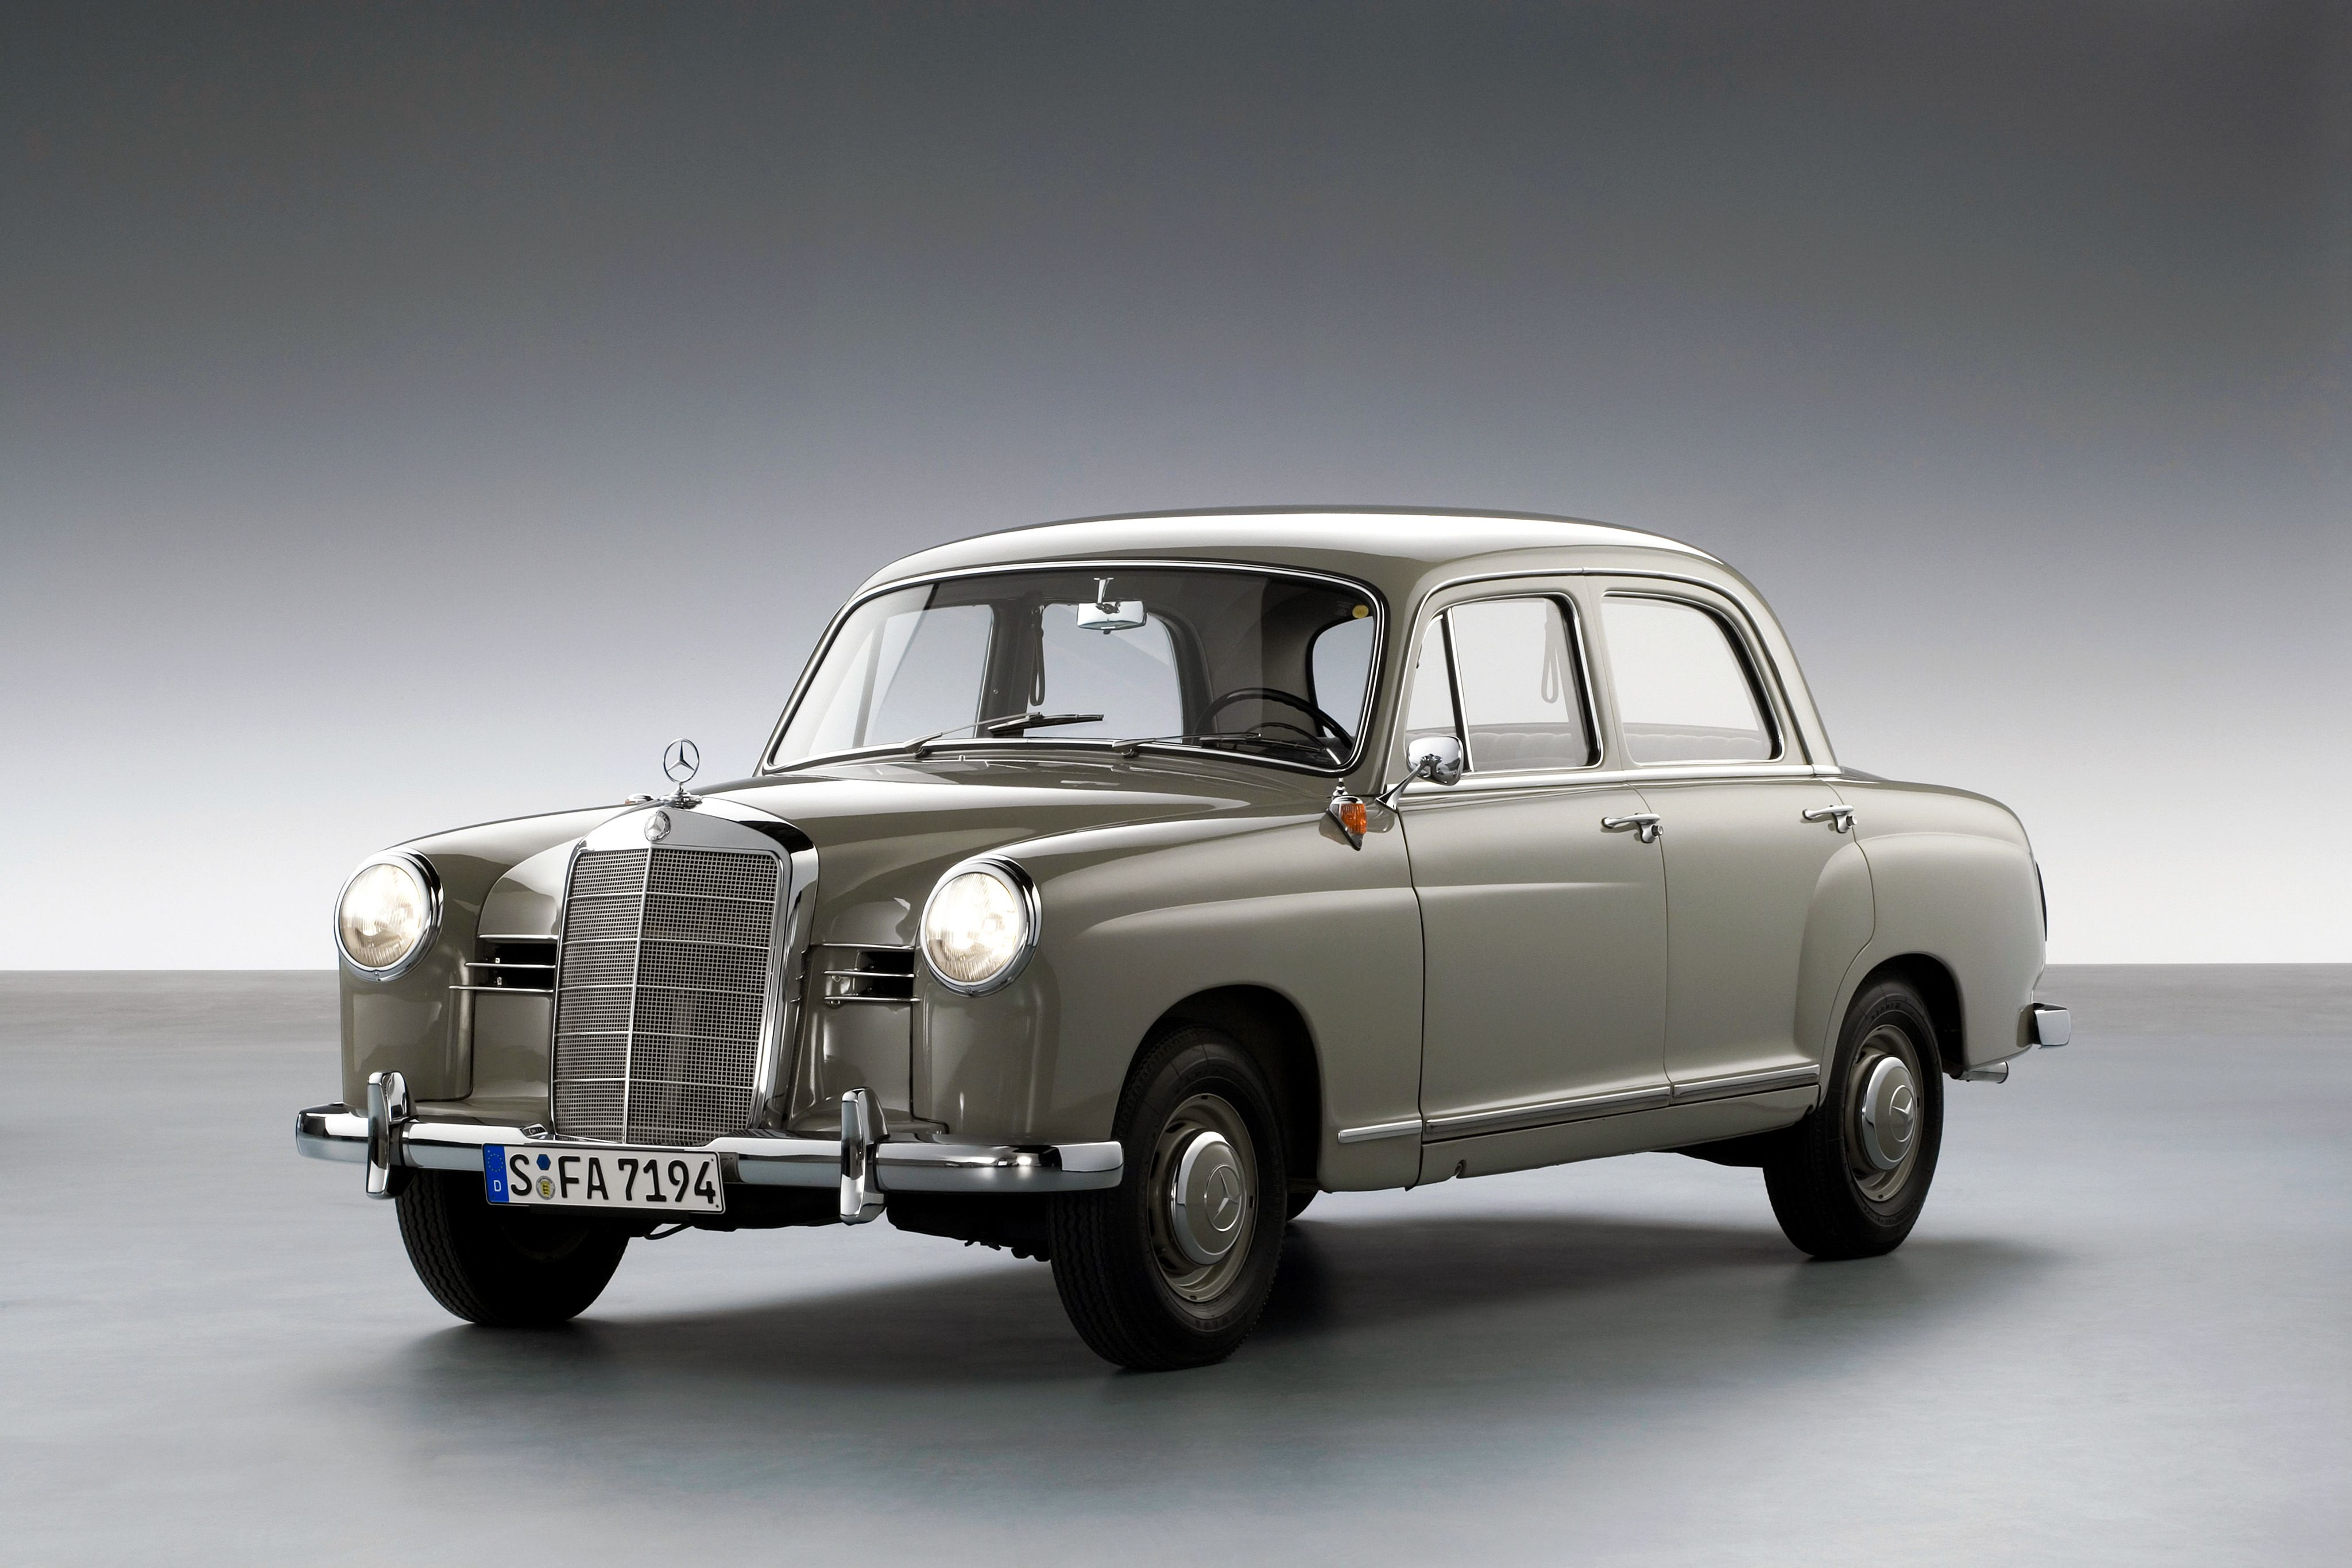 1953 ponton the first mercedes benz to feature an advanced three box design with self supporting body structure and fully integrated wings